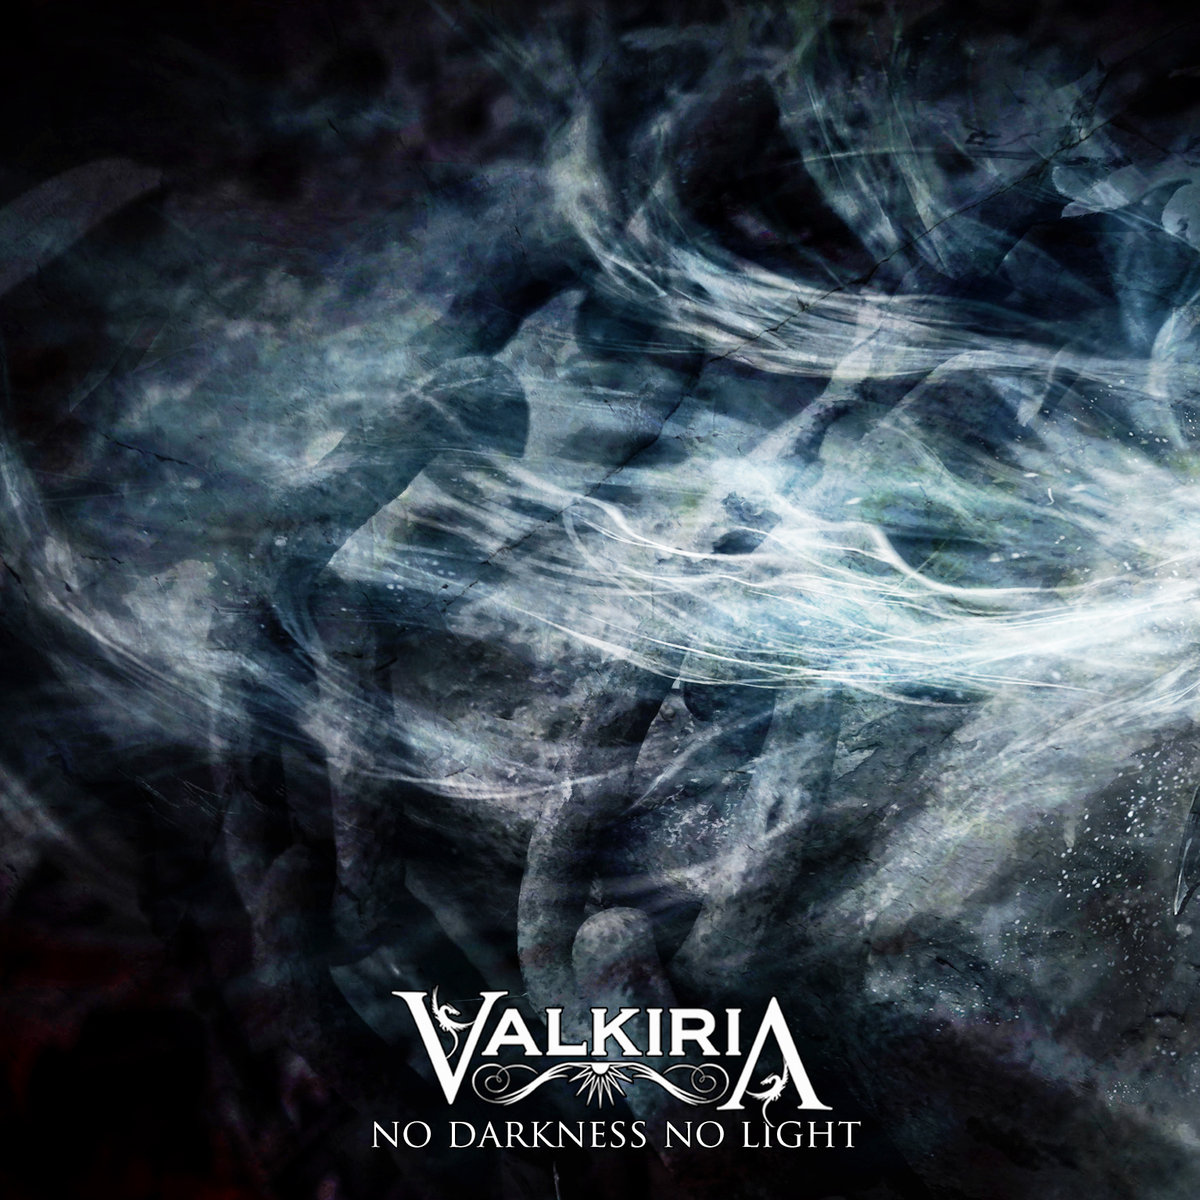 Valkiria - No Darkness No Light